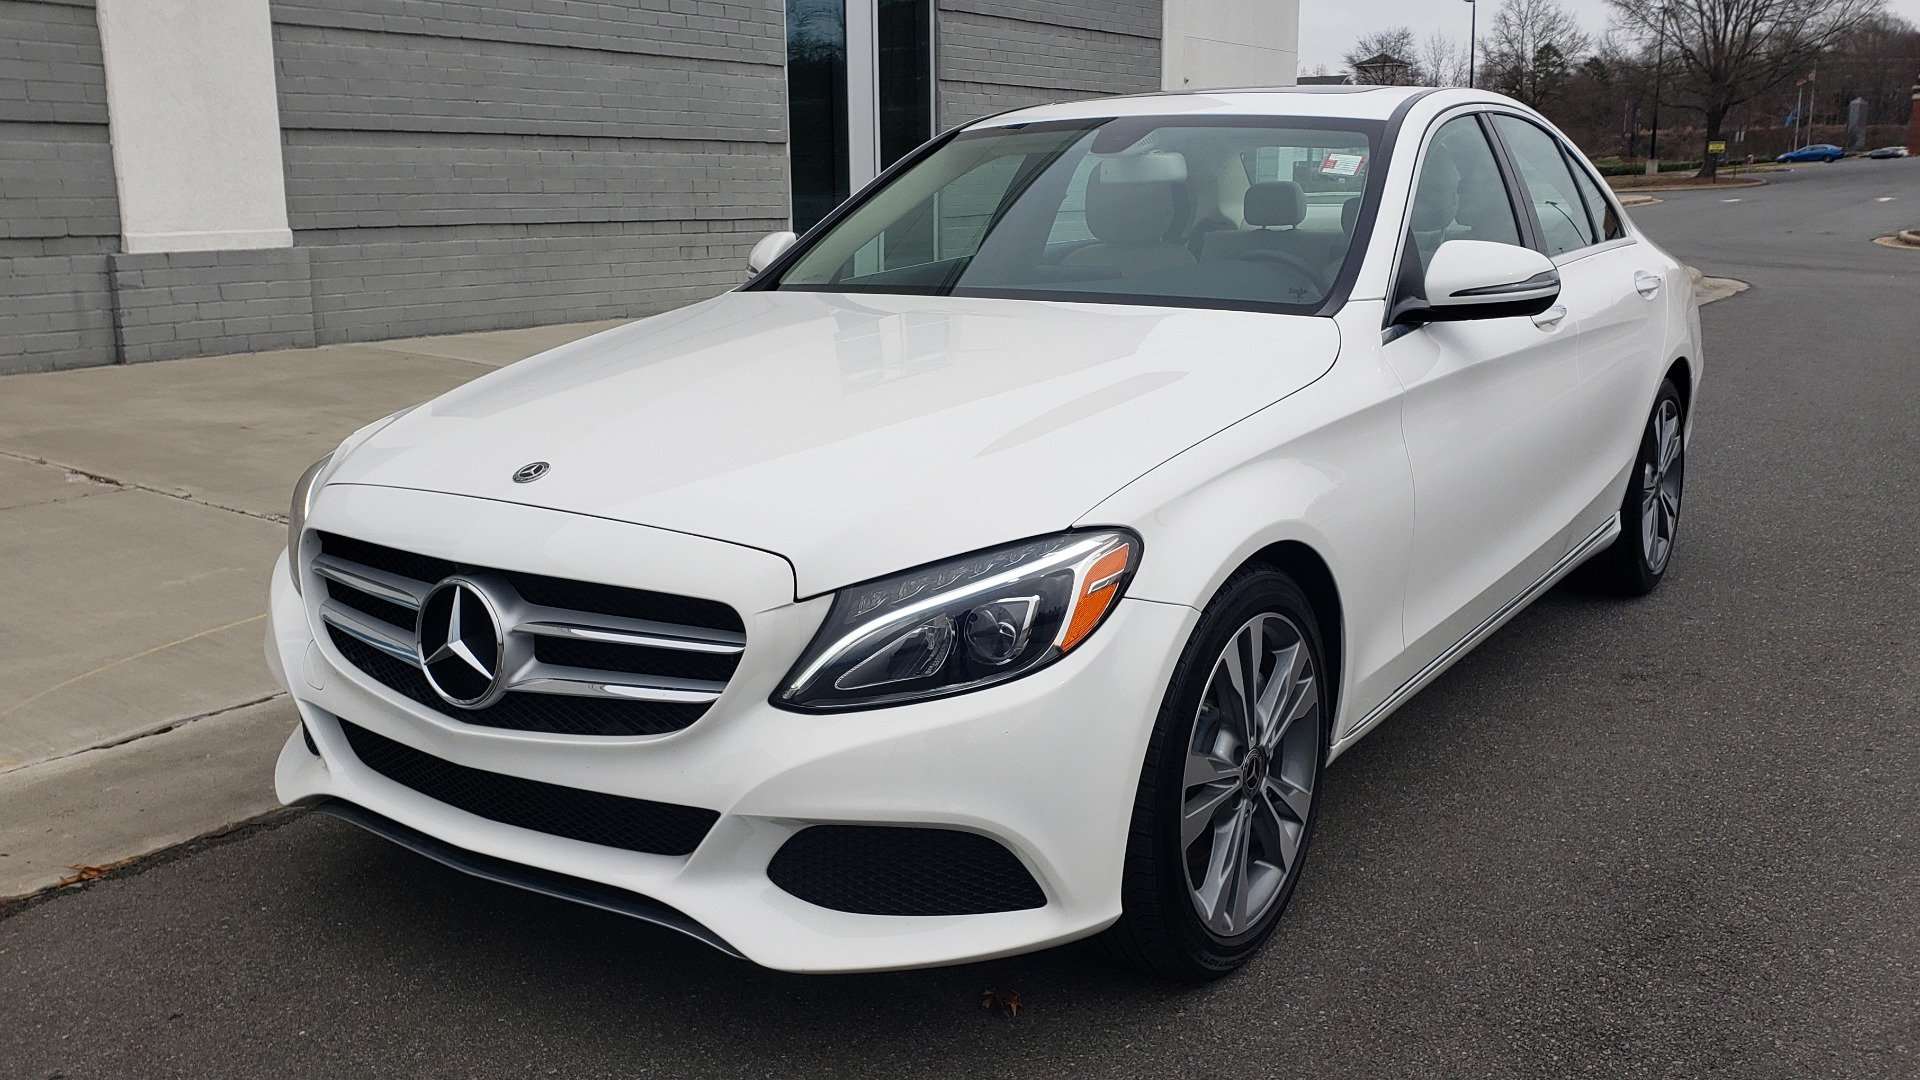 Used 2018 Mercedes-Benz C-CLASS C 300 PREMIUM / NAV / HTD STS / APPLE CARPLAY / REARVIEW for sale Sold at Formula Imports in Charlotte NC 28227 1